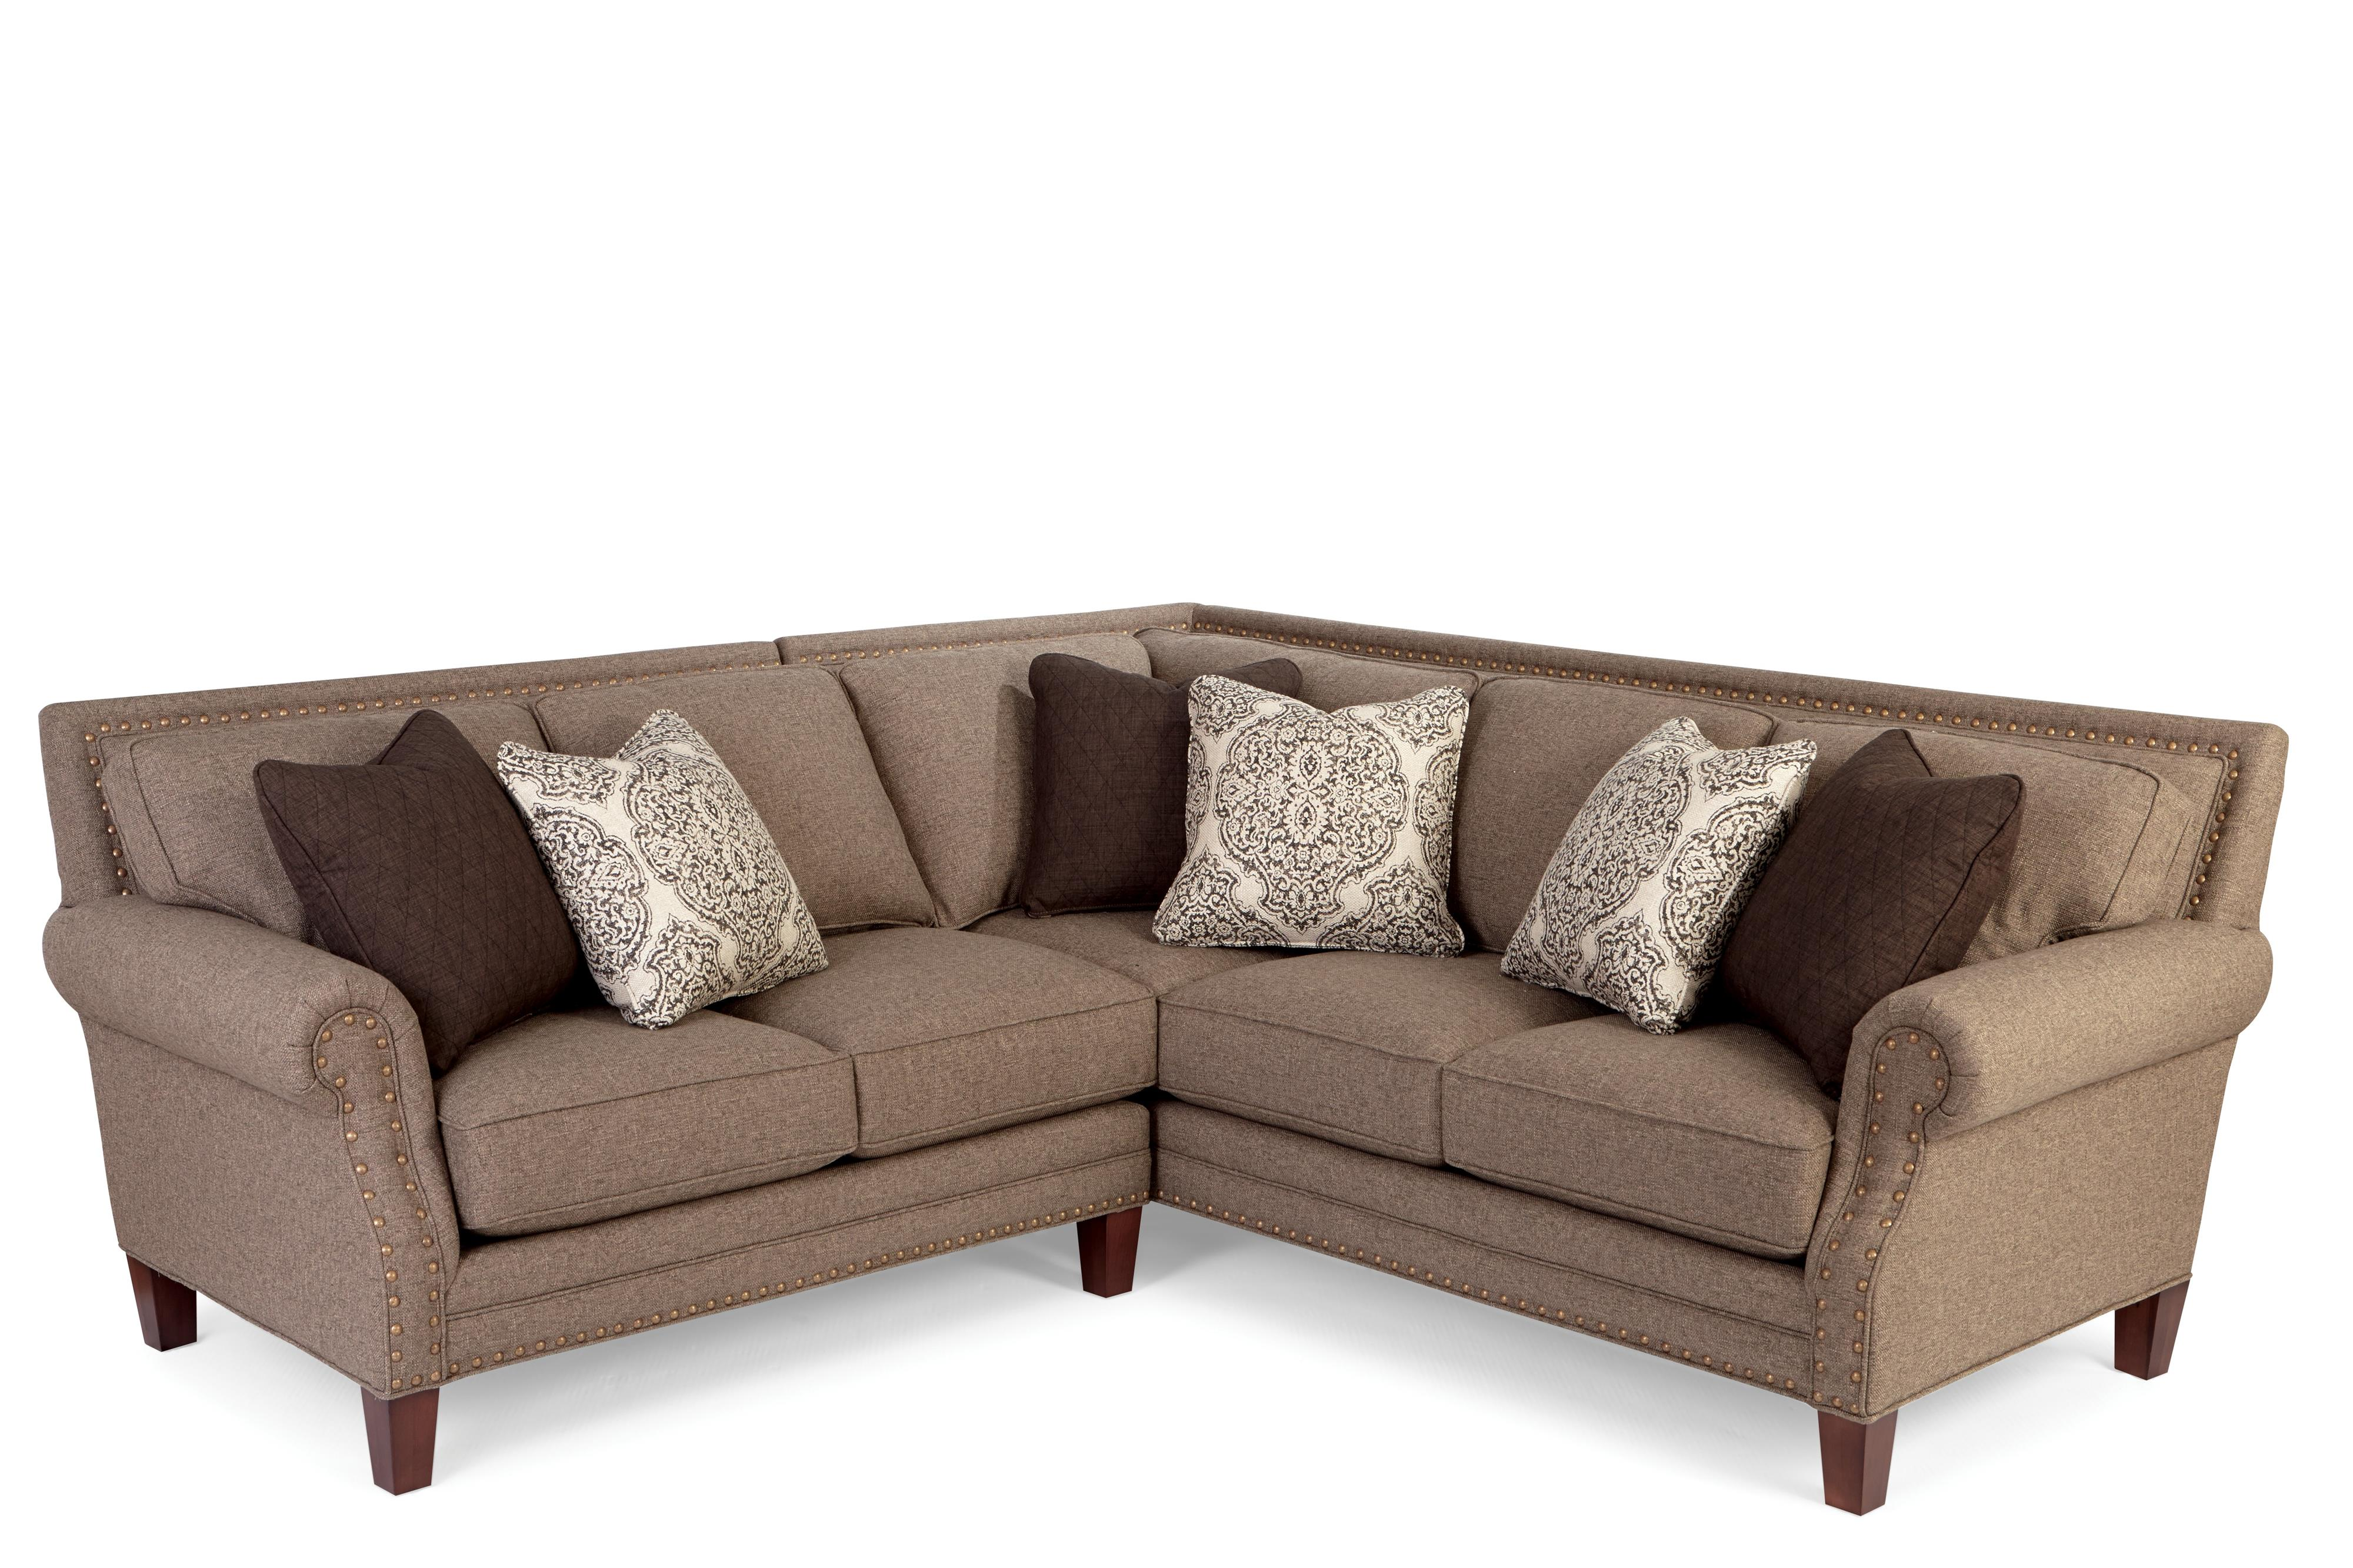 Craftmaster 747155 2 Pce Upholstered  Sectional - Item Number: 747115